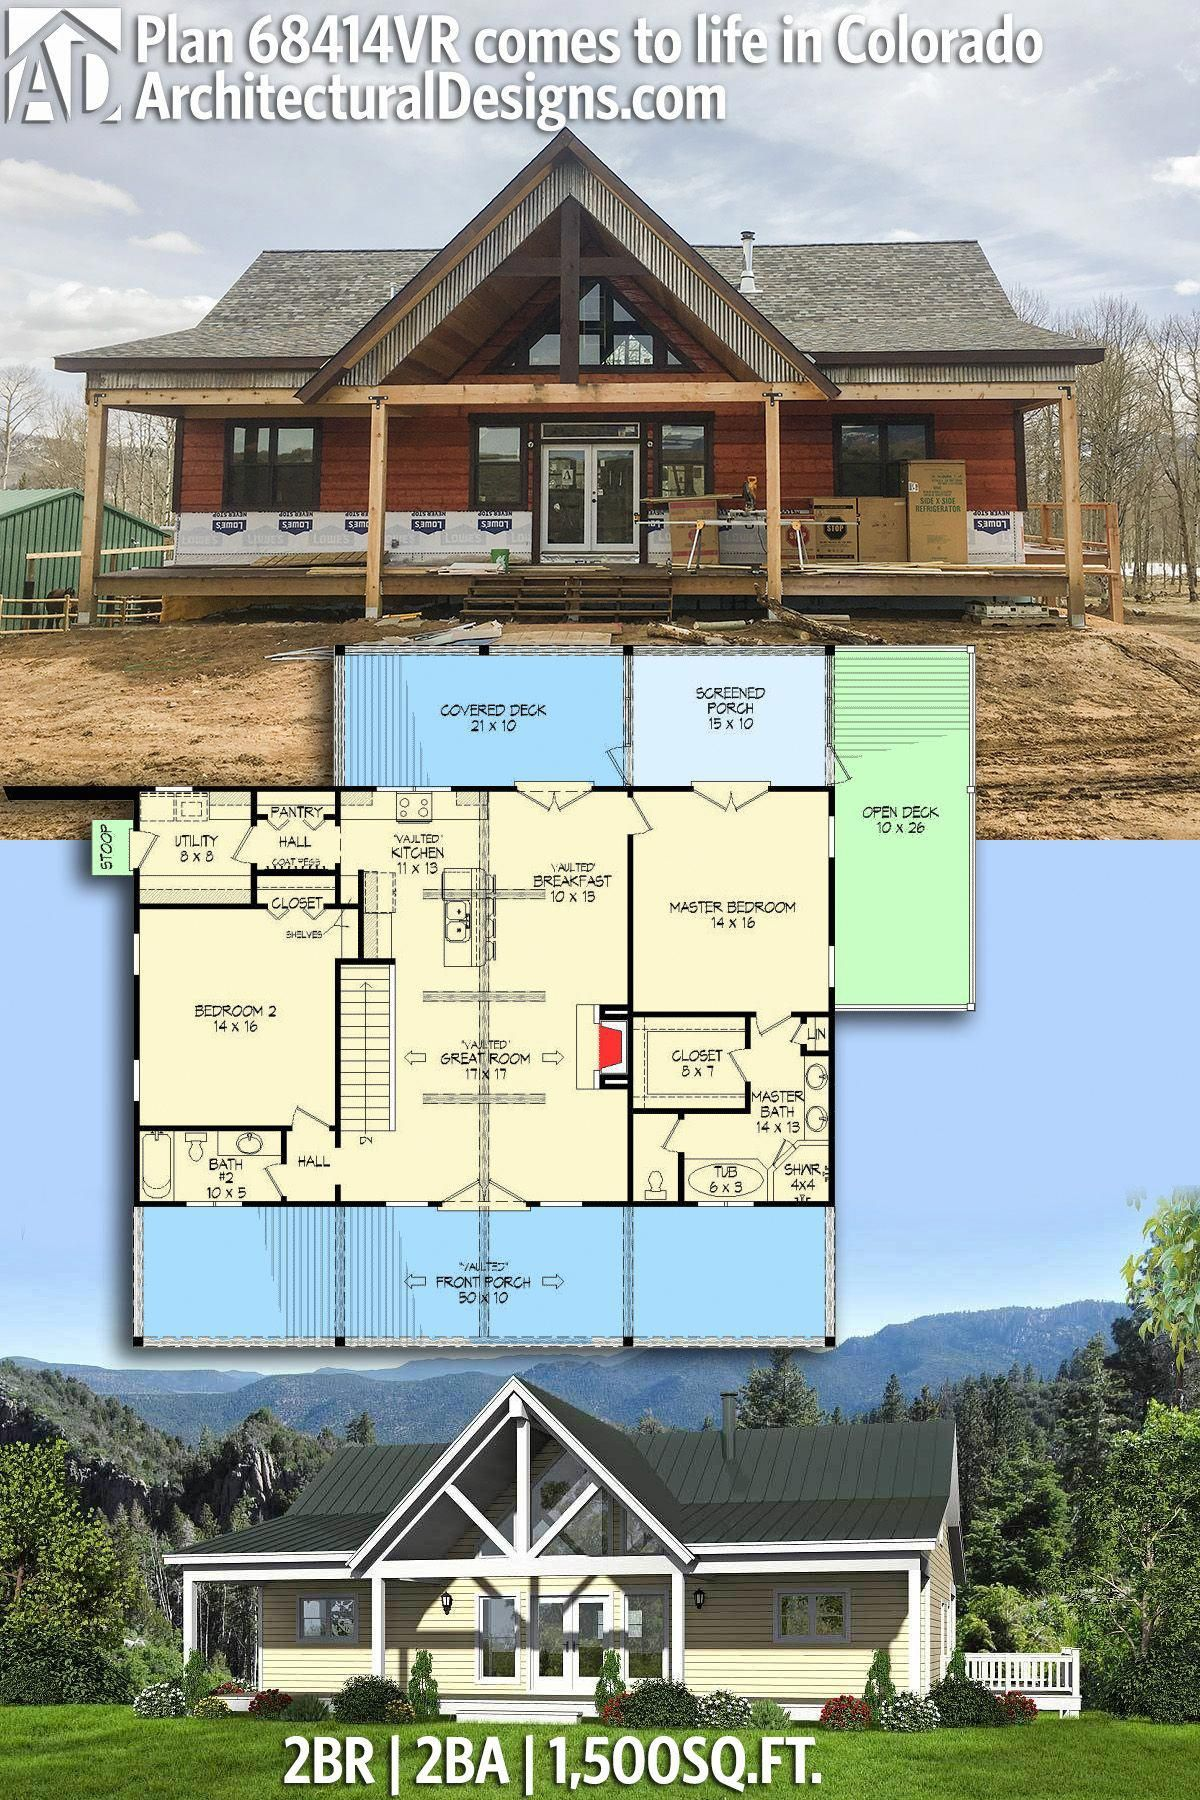 1500 Sq Ft Monitor Barn Would Need To Scale Down Architecturedesign Barn House Plans Pole Barn House Plans Architectural Design House Plans